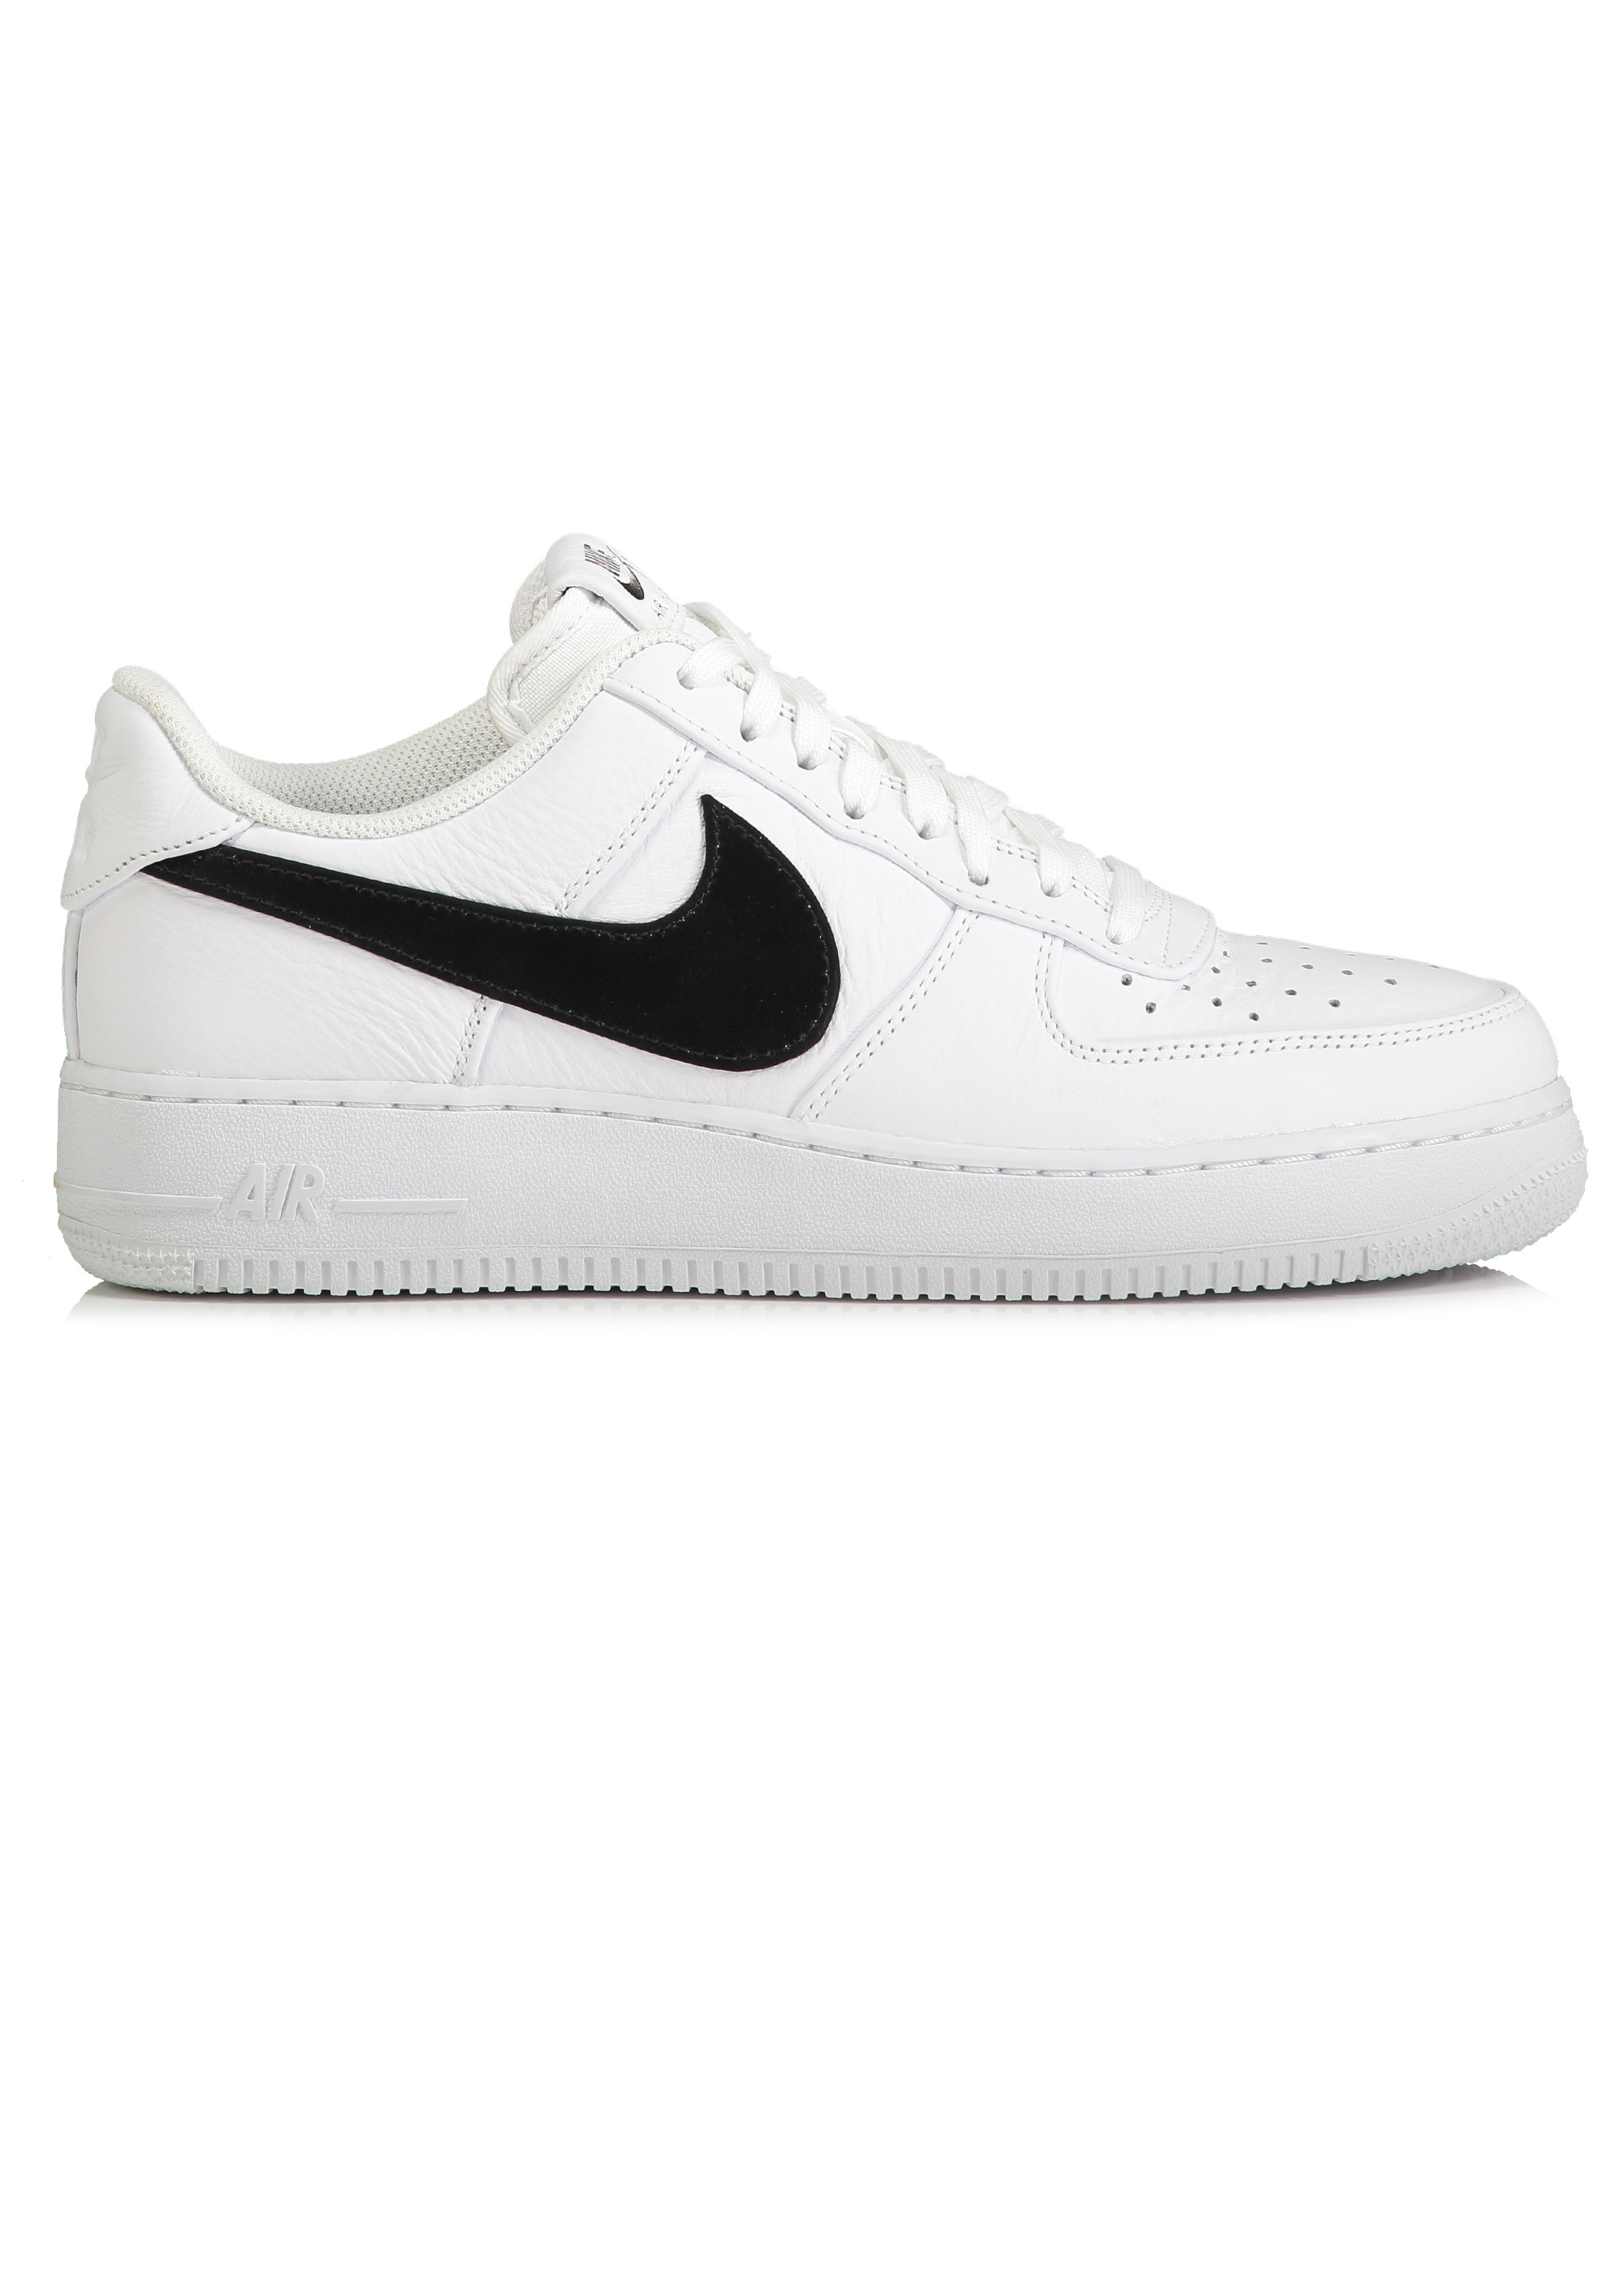 Nike Footwear Air Force 1 07 PRM 2 White Black